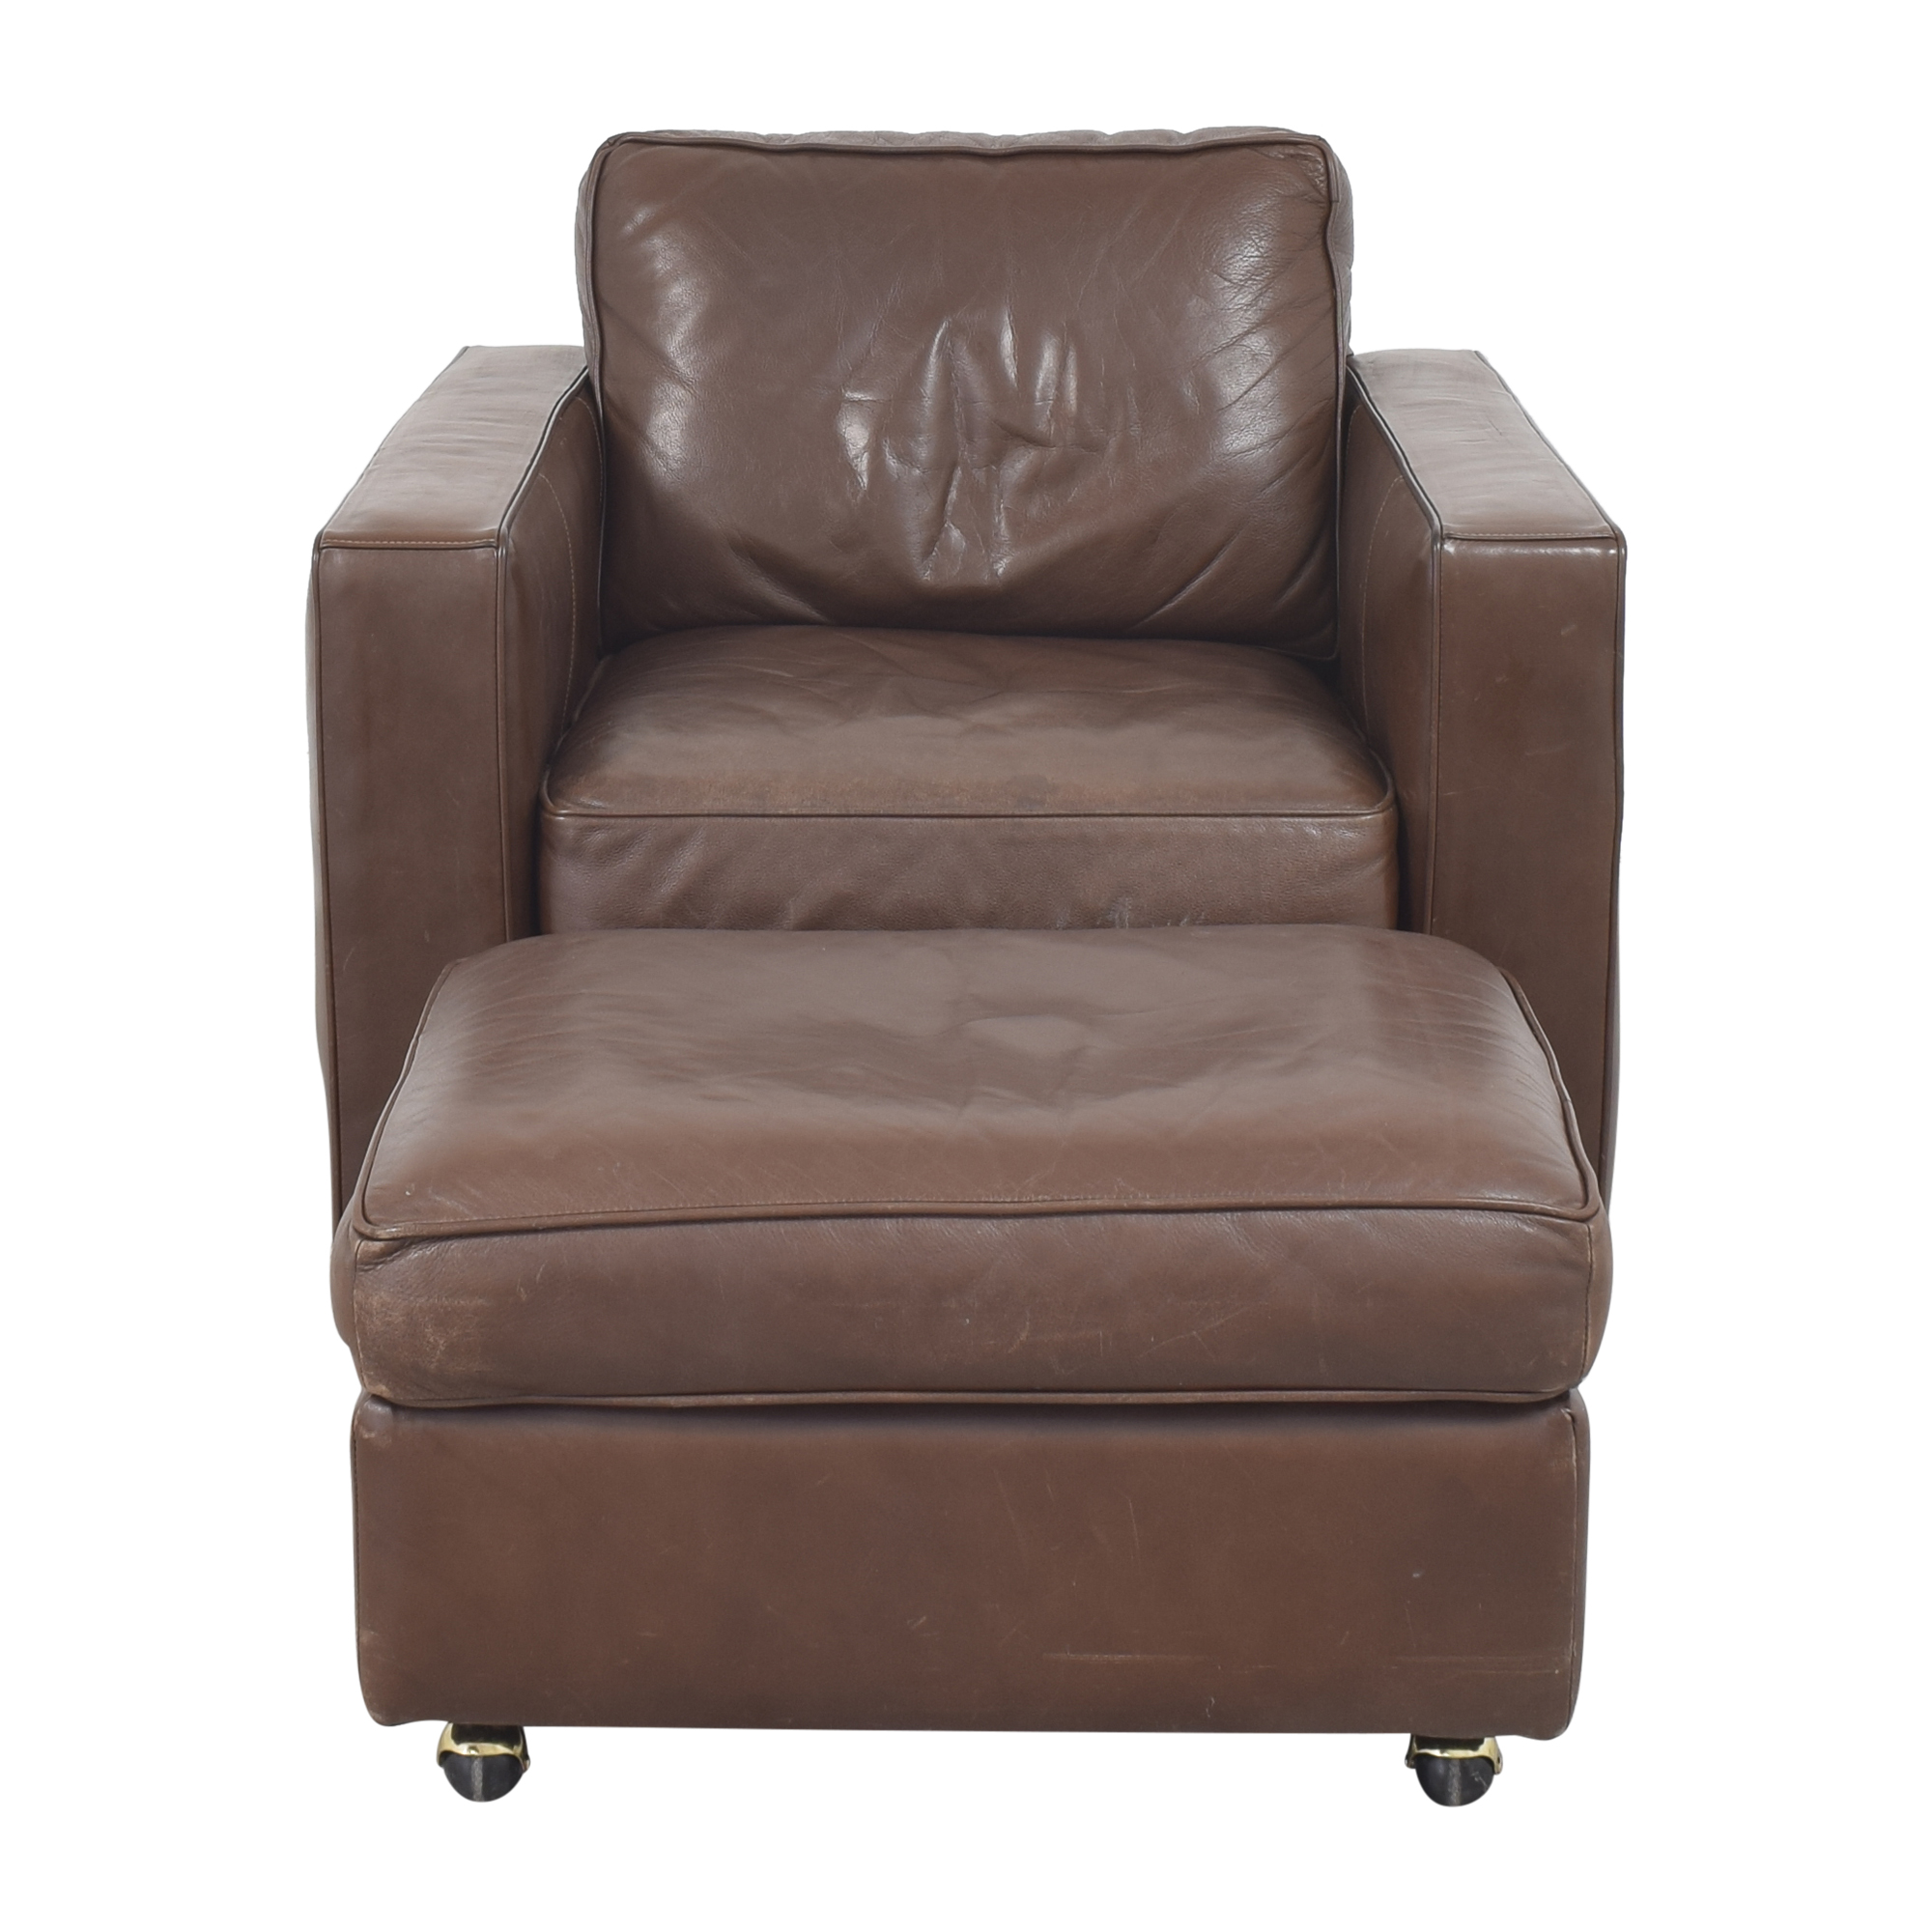 Room & Board Accent Chair with Ottoman Room & Board